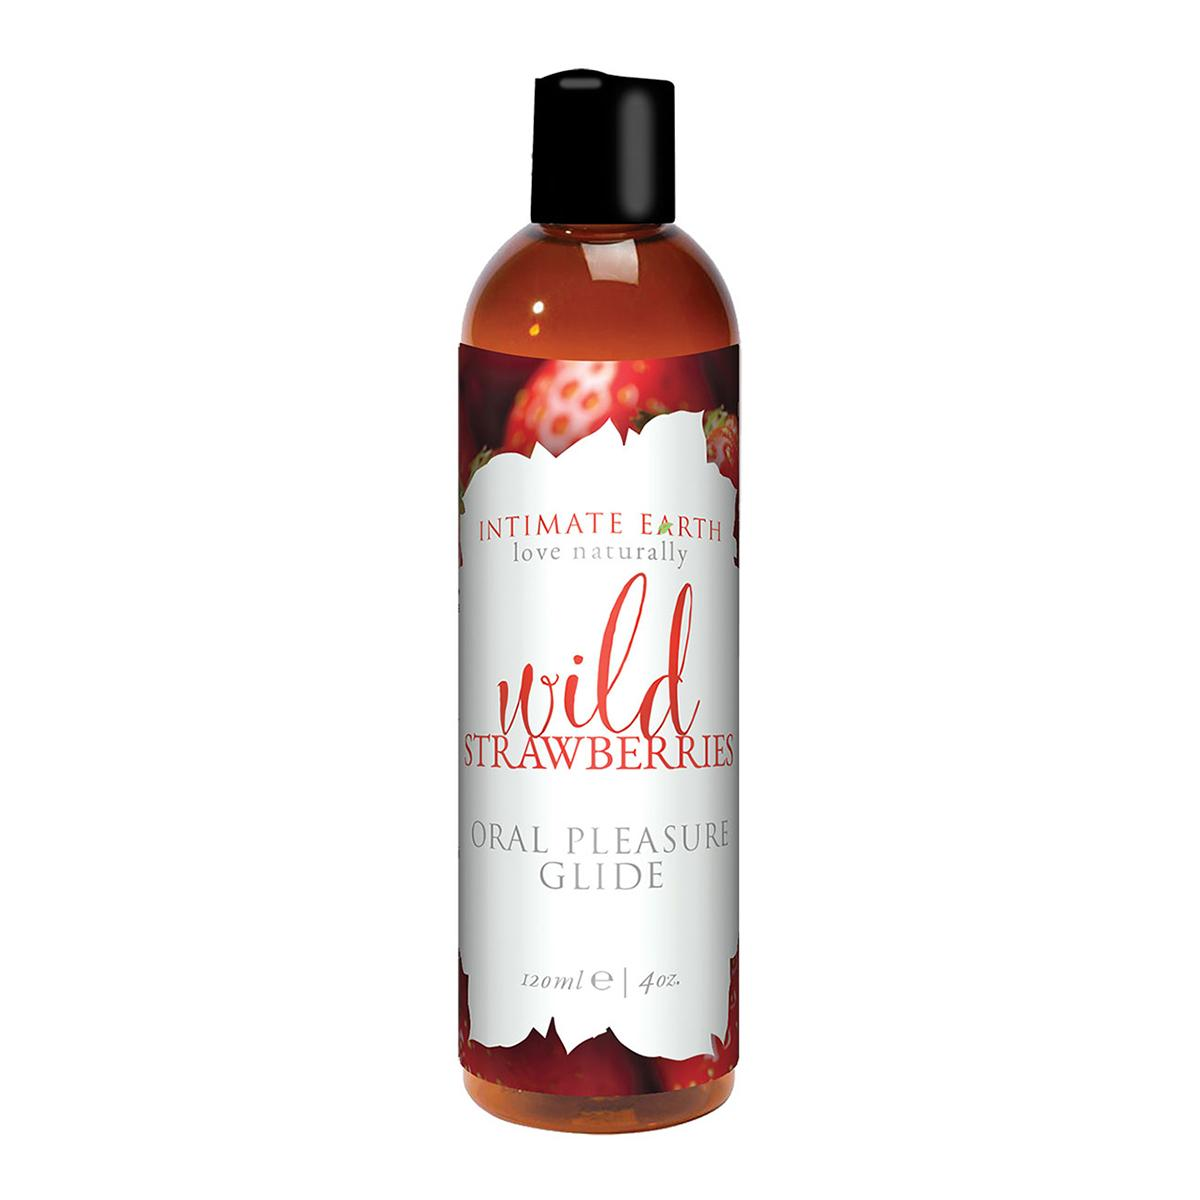 Intimate Earth Flavored Strawberry 4oz.